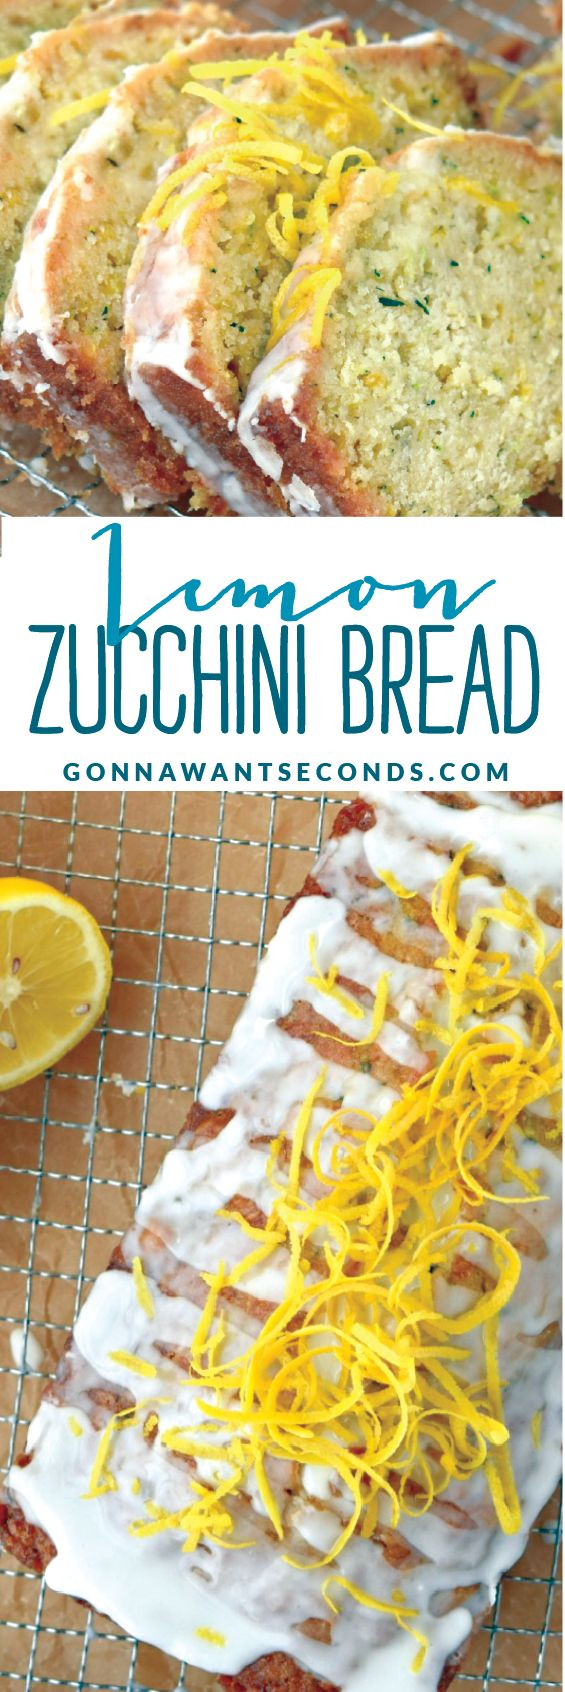 Lemon Zucchini Bread is a lovely quick bread perfectly suited for summer. This recipe is moist, tender and packed with luscious lemon flavor. Oh, and did I mention it's gloriously covered in two glazes?  That's right, not one, but  TWO glazes!